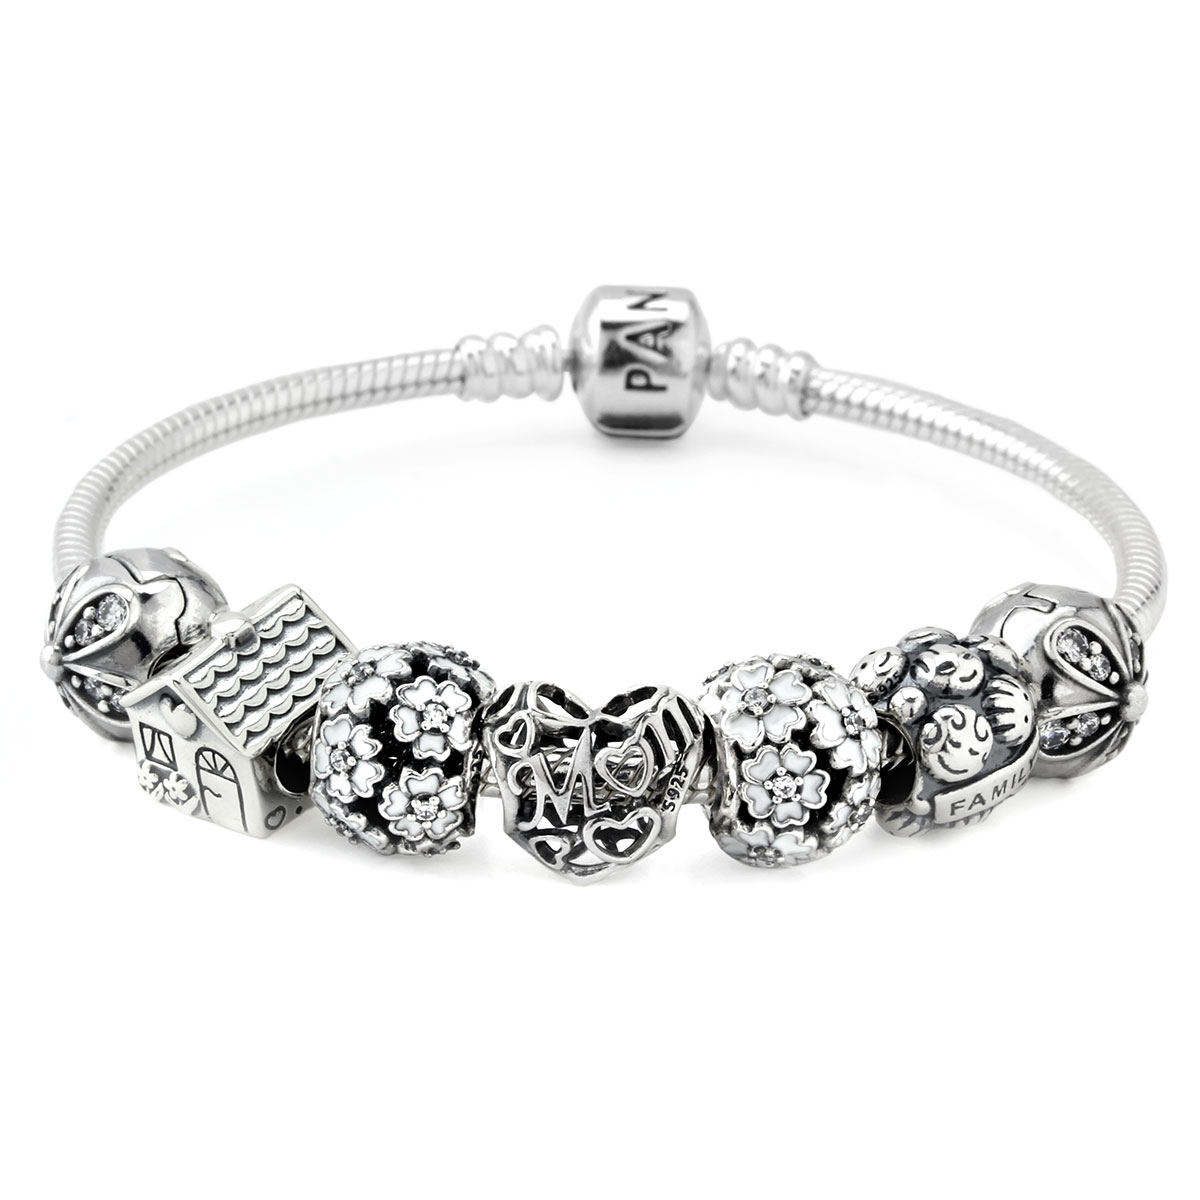 Pandora Bracelet Design Ideas find this pin and more on design and share your pandora designs Pandora Bracelet Designs Ideas